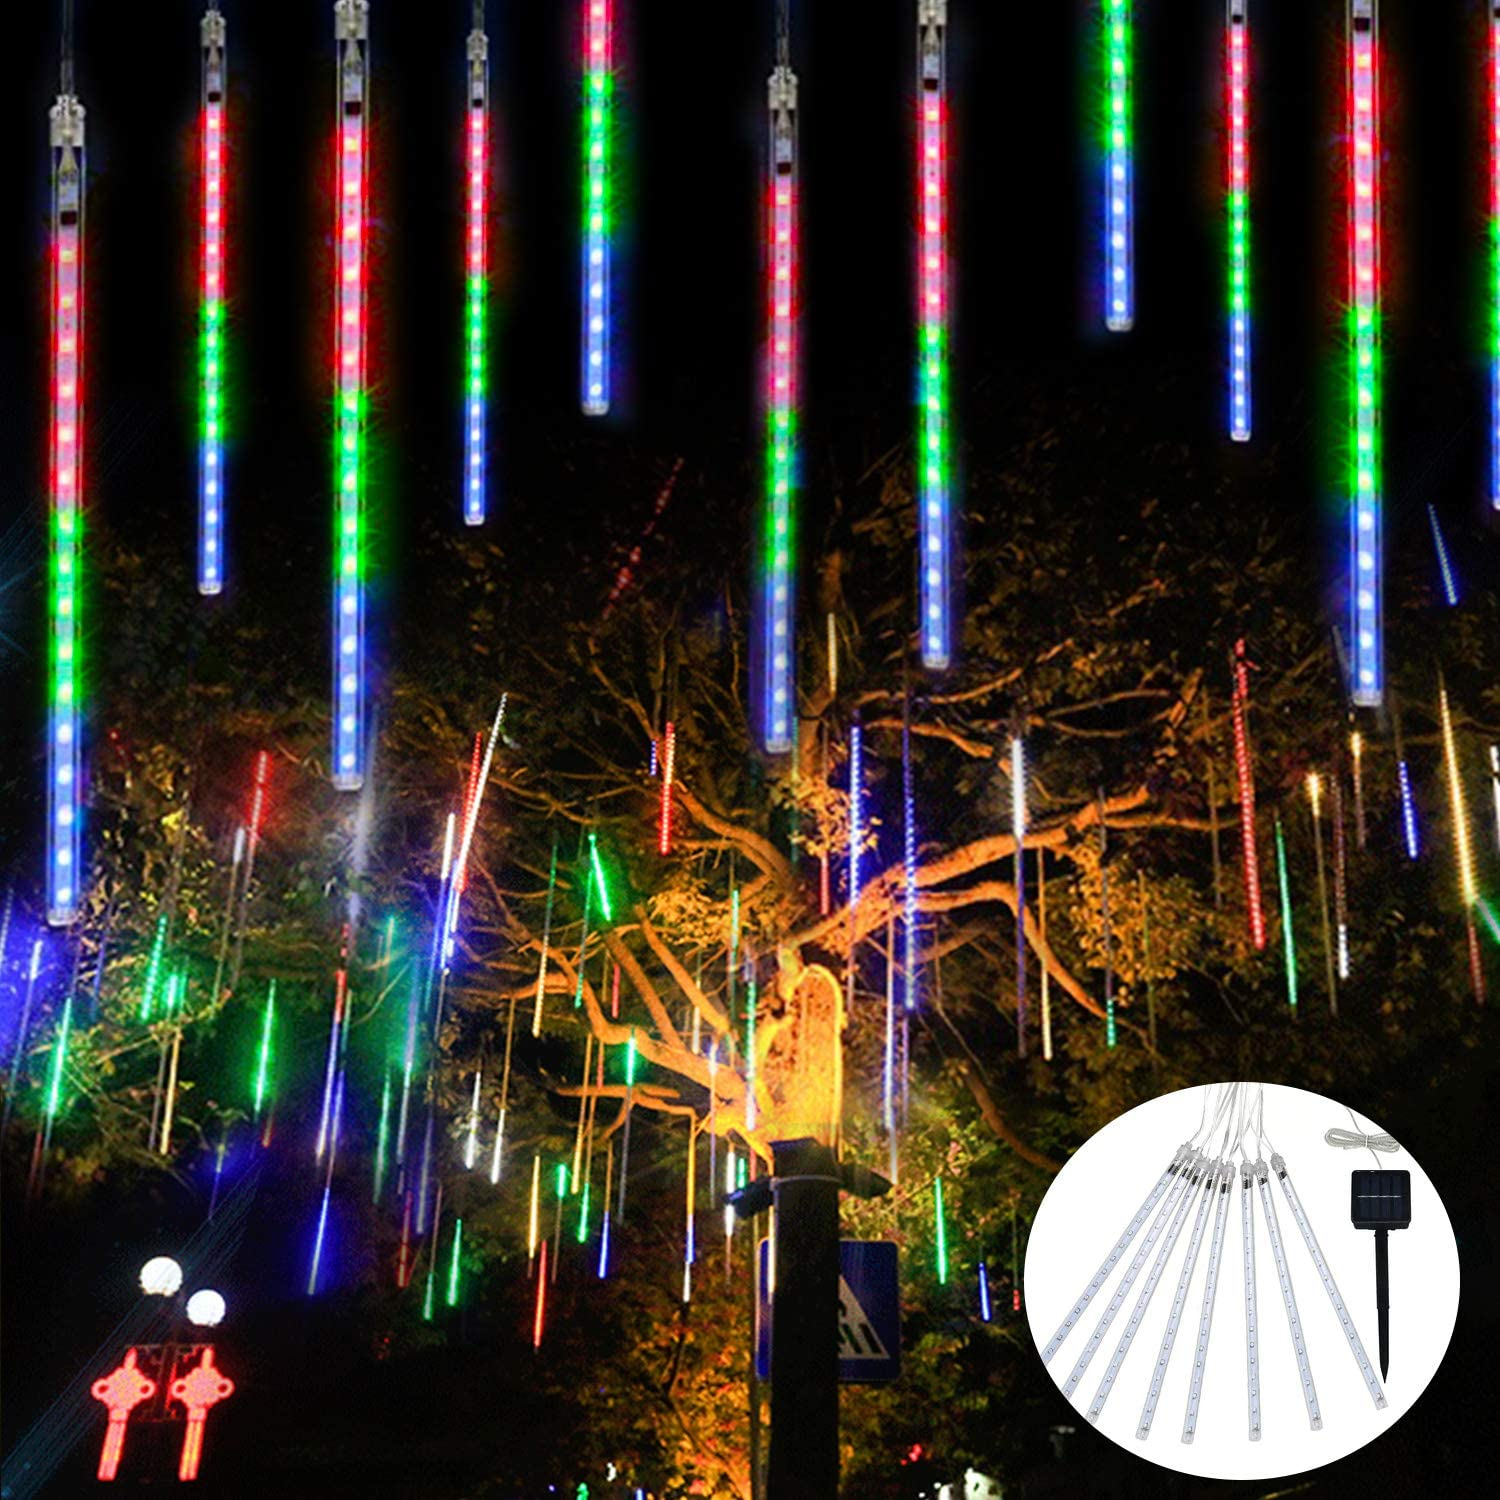 144 LED Solar//Plug Charged Meteor Shower String Lights Tree Lamp Falling Icicle